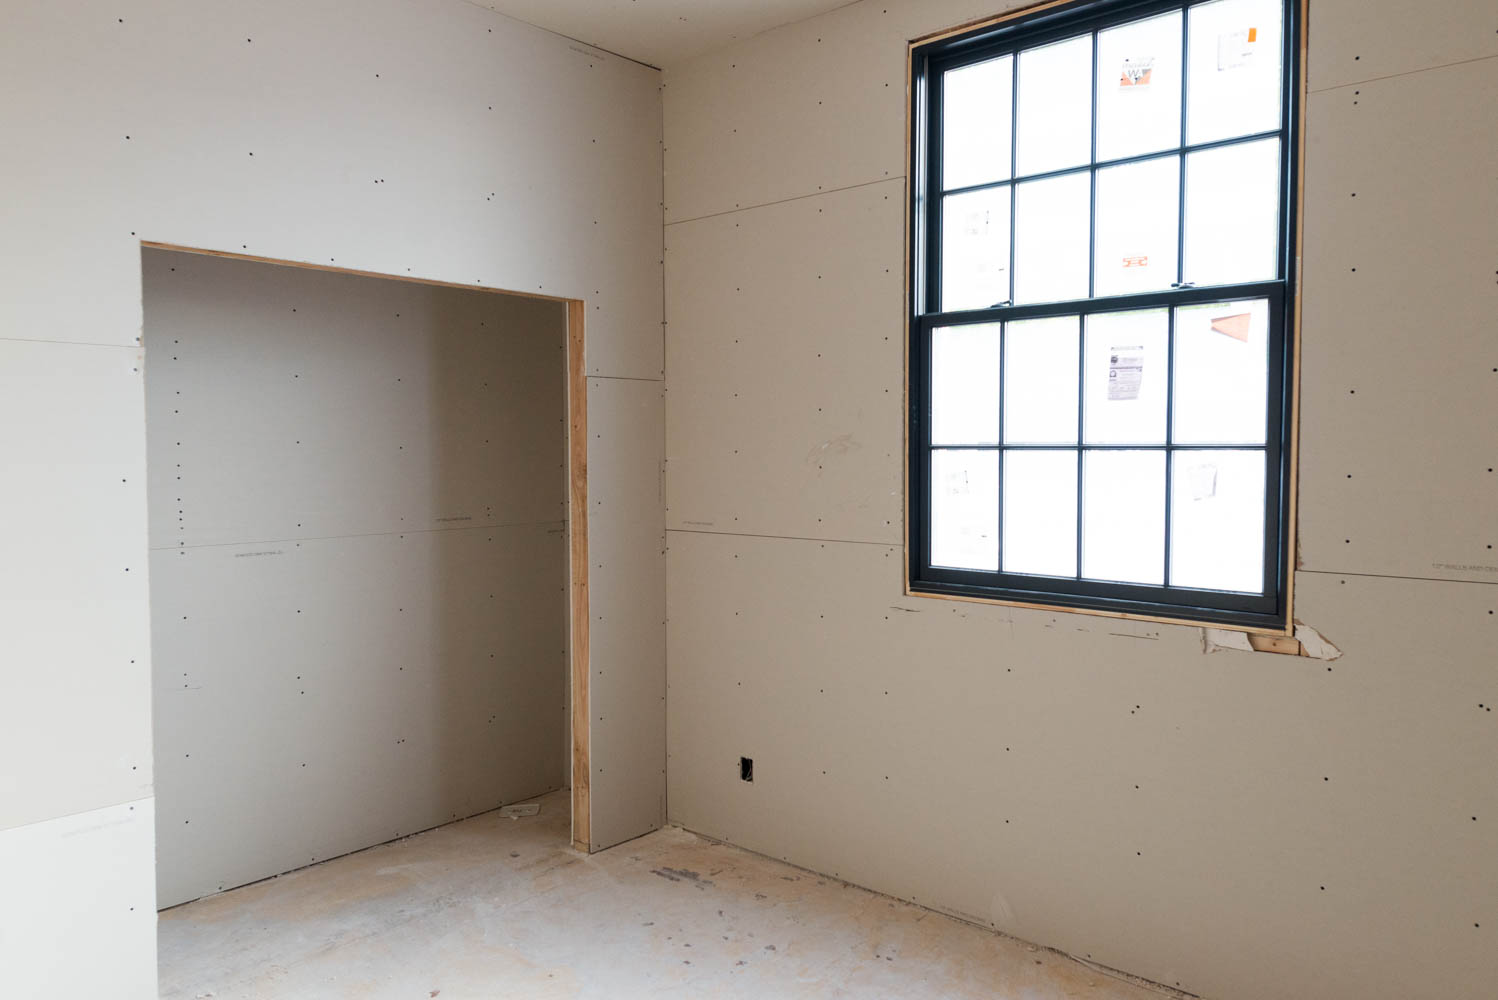 Level 0 | Unfinished: The Drywall Is Hung With No Finish Work At All.